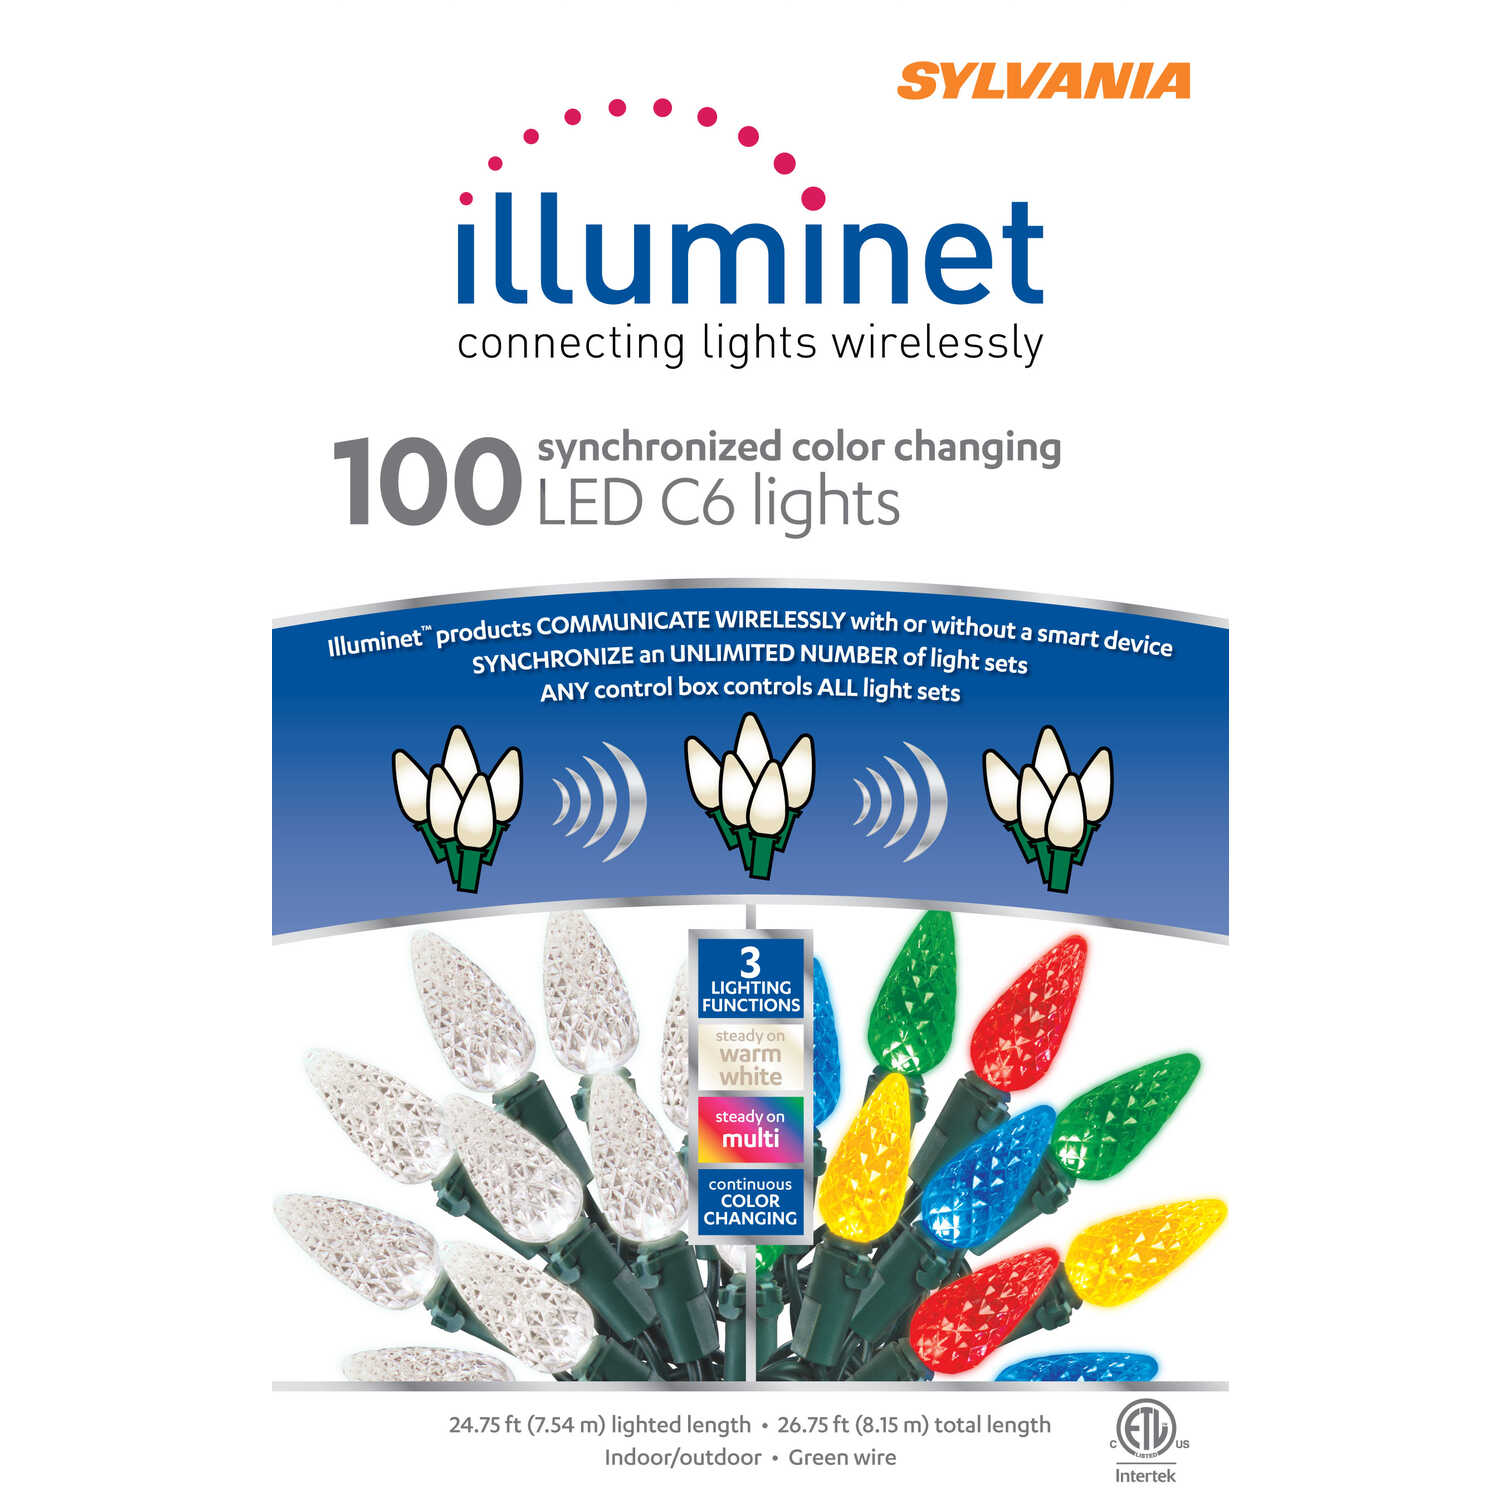 Sylvania  Illuminet  LED C6  LED  Light Set  Color Changing  24.75 ft. 100 lights